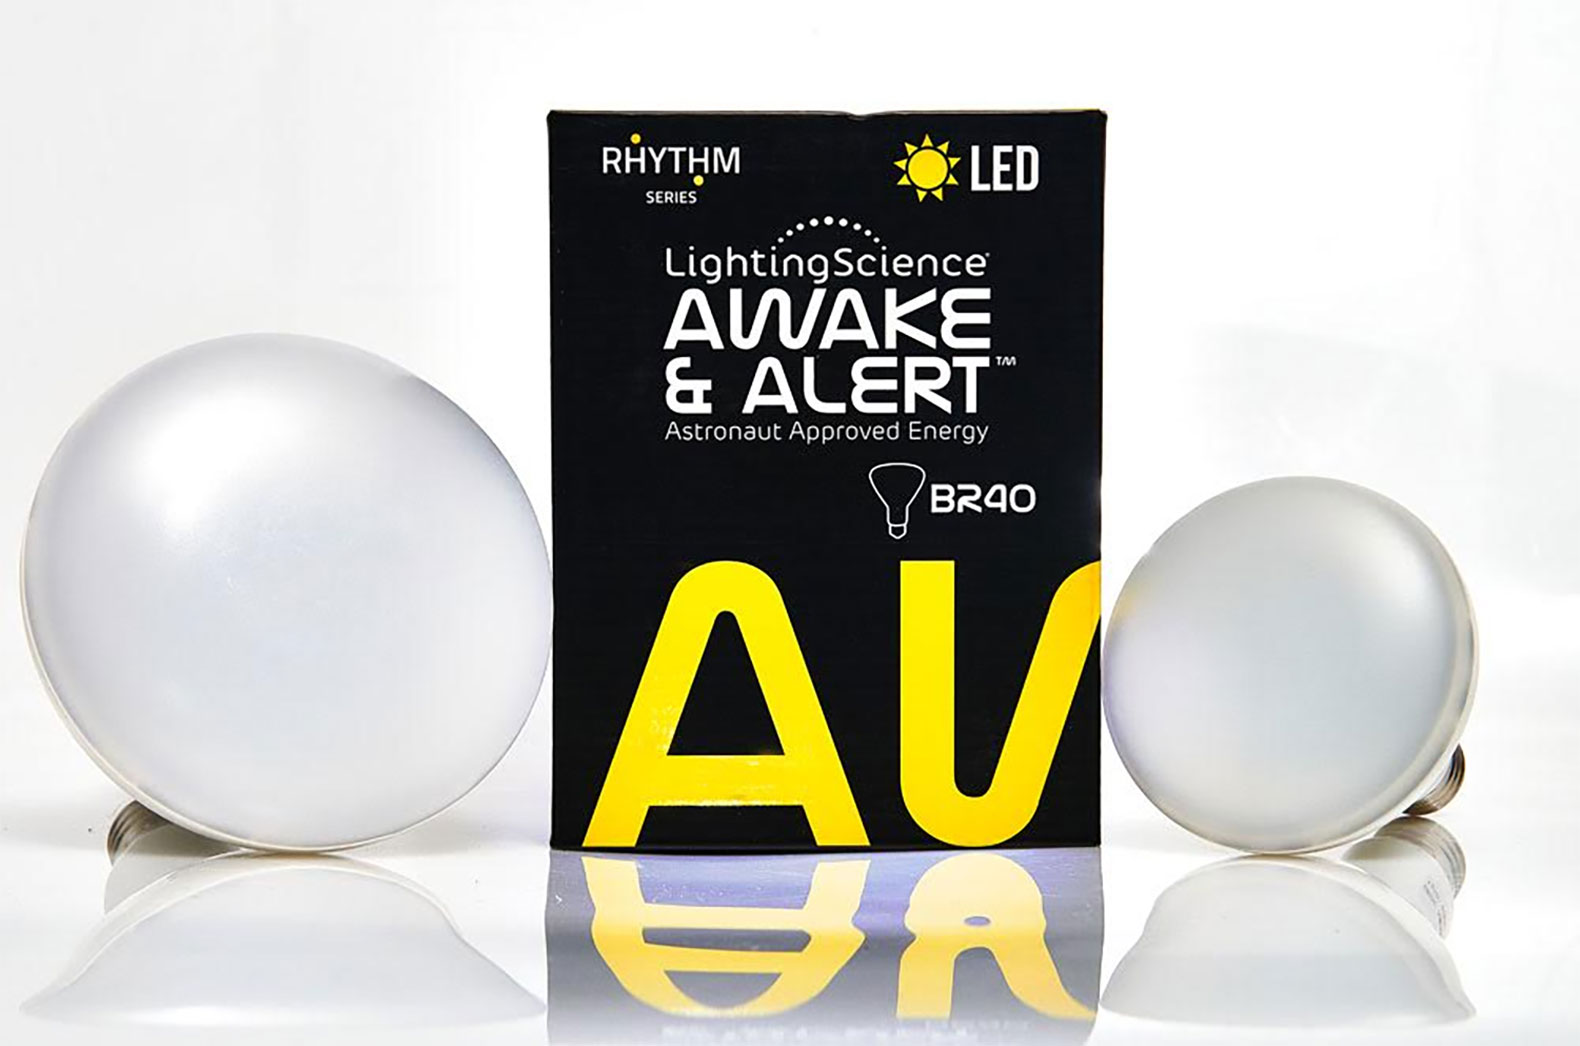 NASA science-backed LED light bulbs help you fall asleep at night and stay alert during the day